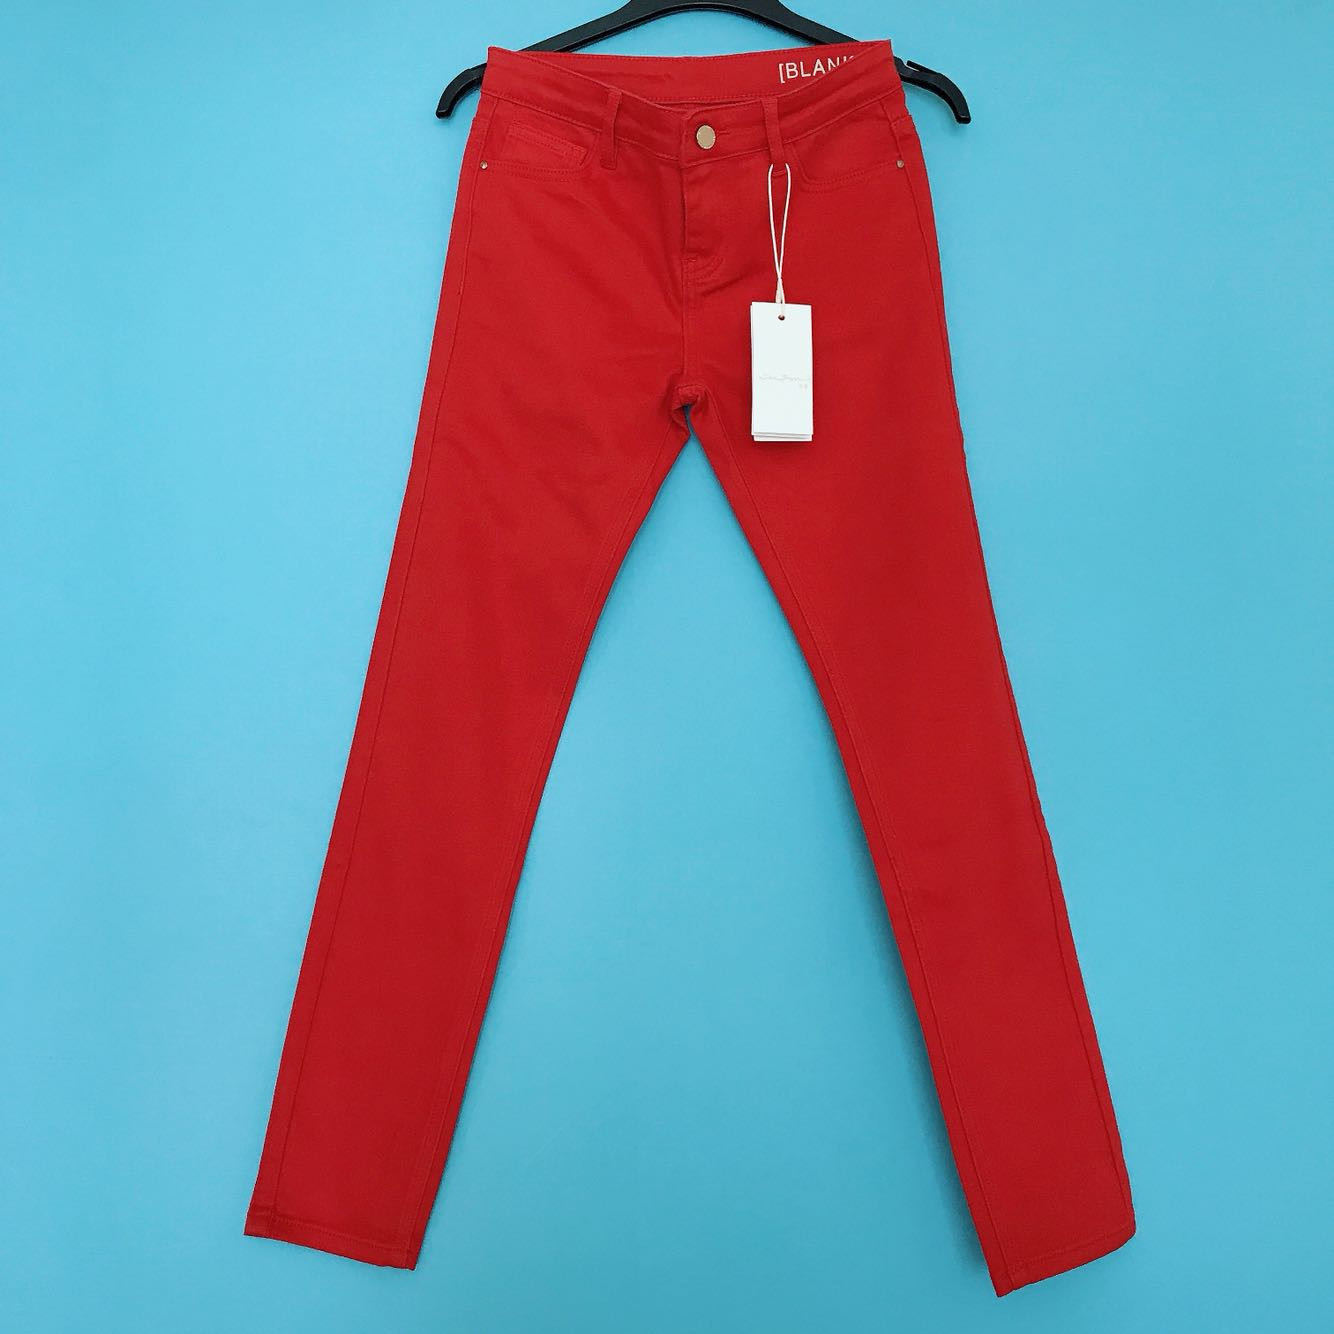 S-fan womens casual pants low waist red cotton slim legged pants spring and autumn new fashion red pants